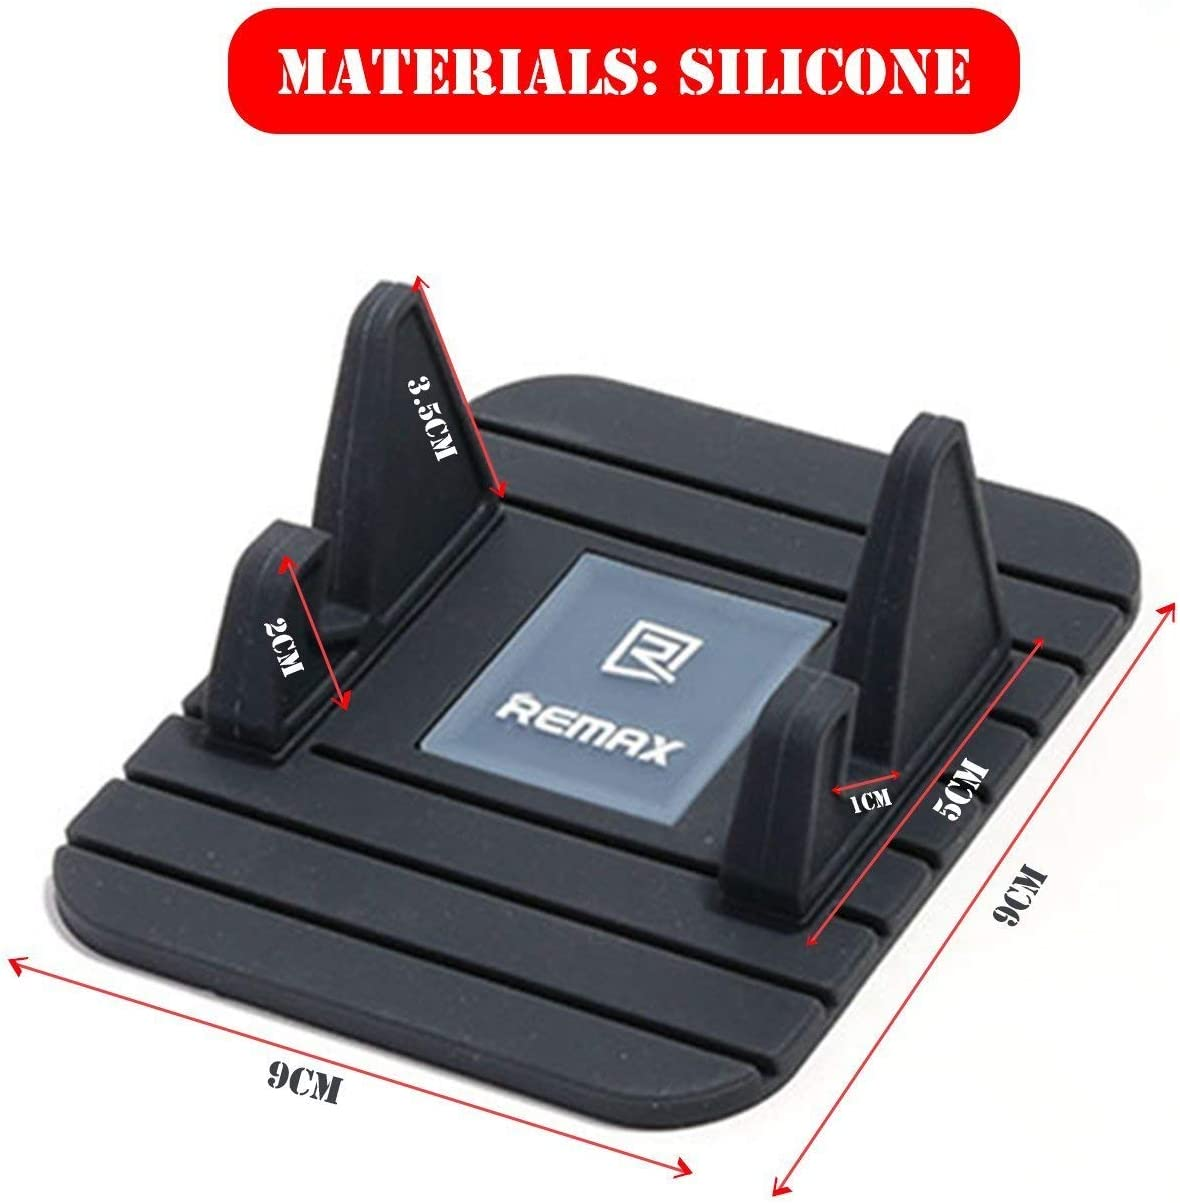 Red Car Mount Silicone Pad Non-Slip Mat Phone Car Holder Stand Cradle Dock for iPhone//Android//Type-C Mobile Phones BestTeam Car Silicone Phone Holder